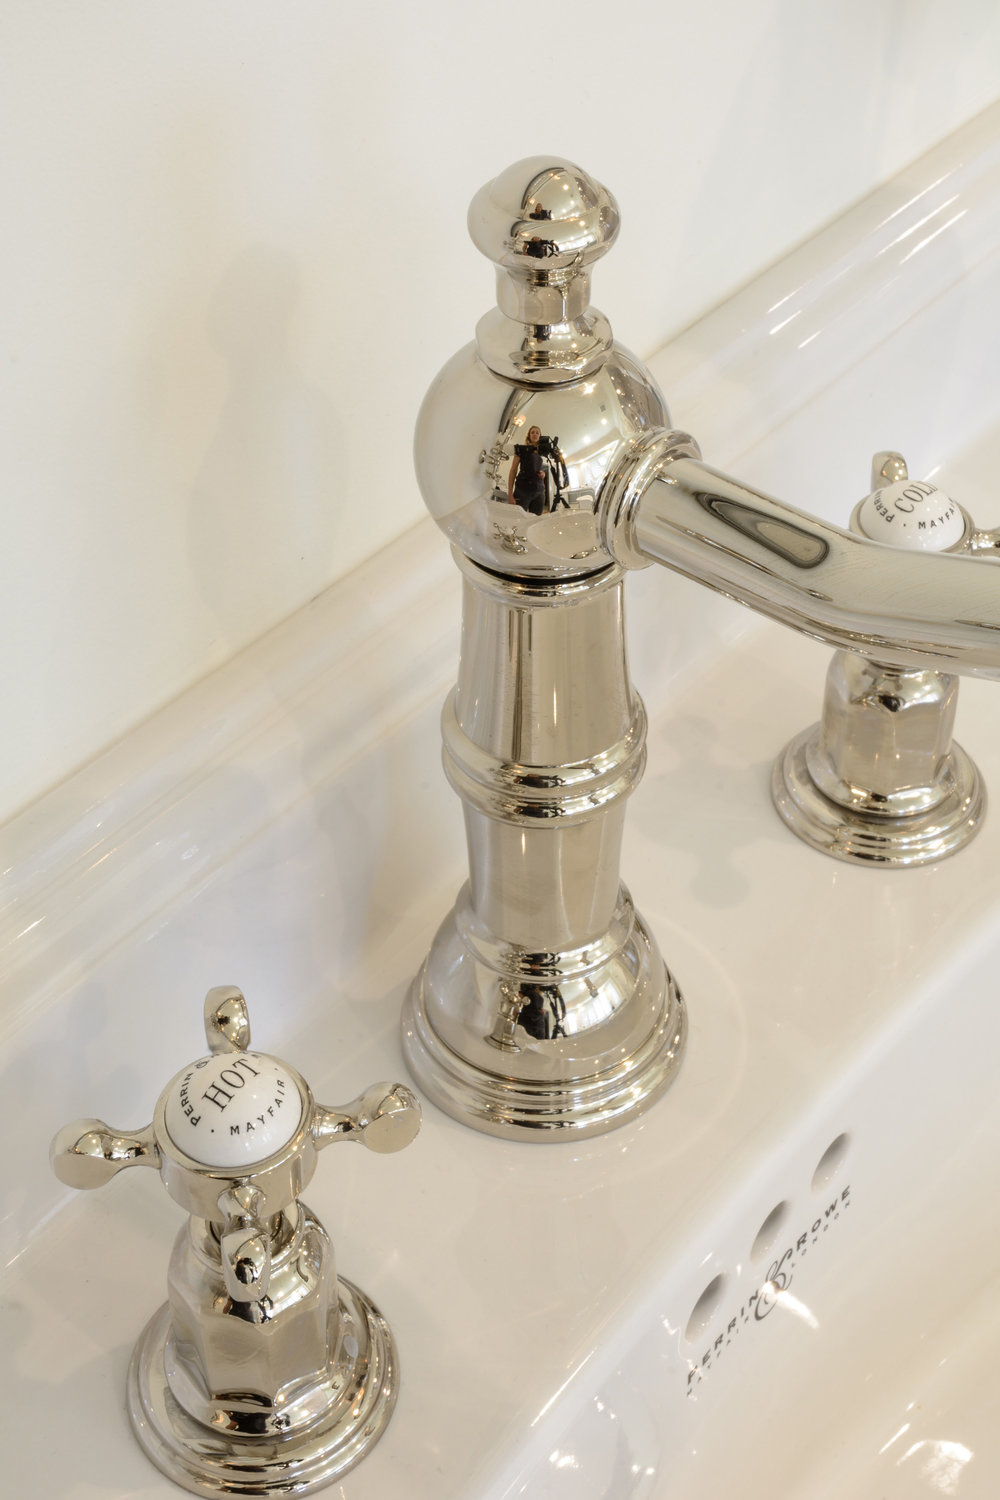 Traditional sink faucet with soft polished nickel finish